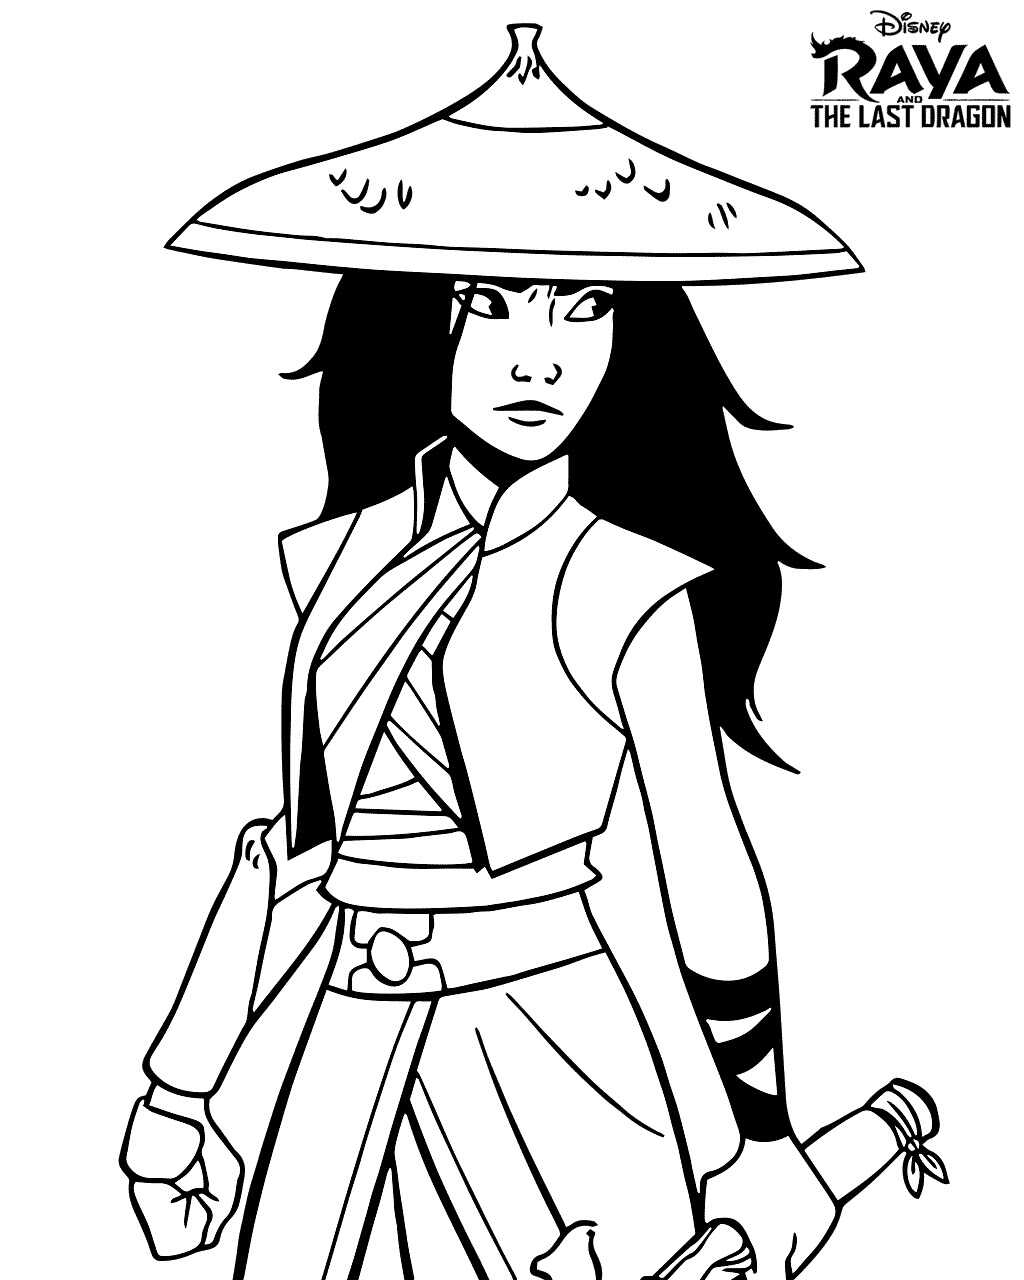 Princess Raya wears hat and holds her sword Coloring Page